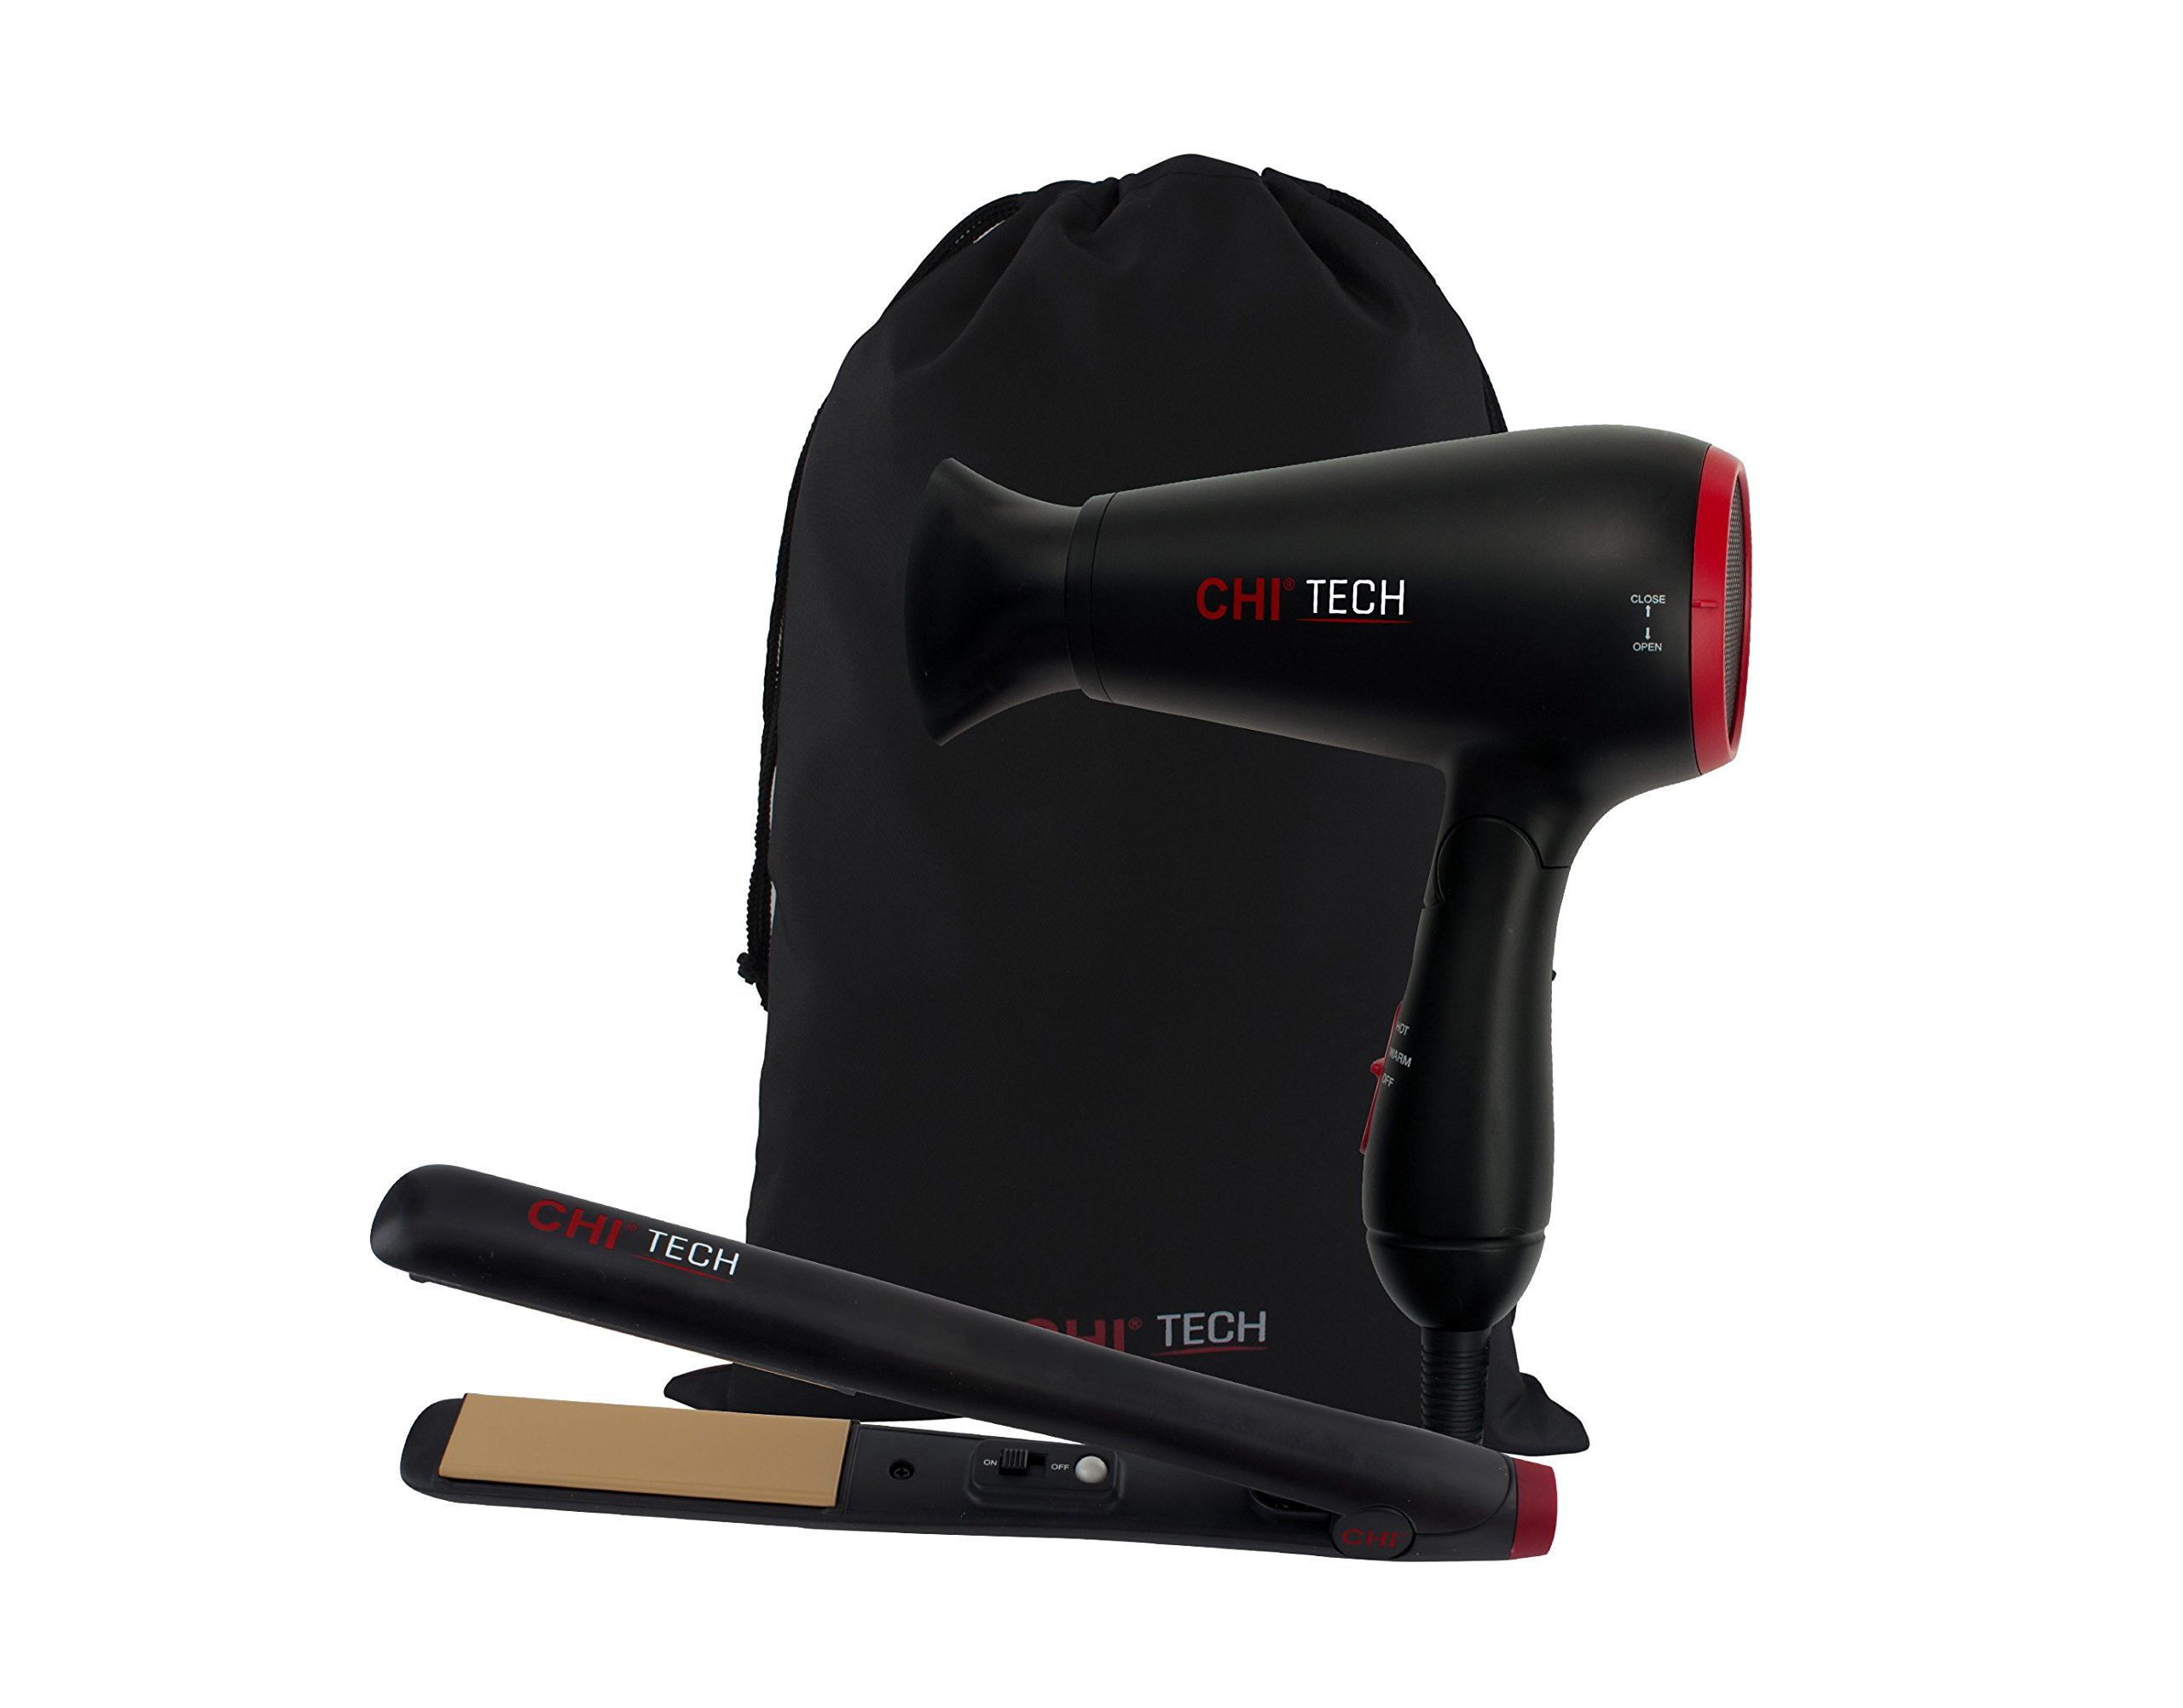 CHI Tech Hair Dryer and Ceramic Hairstyling Iron - 2 Piece Travel Set by CHI